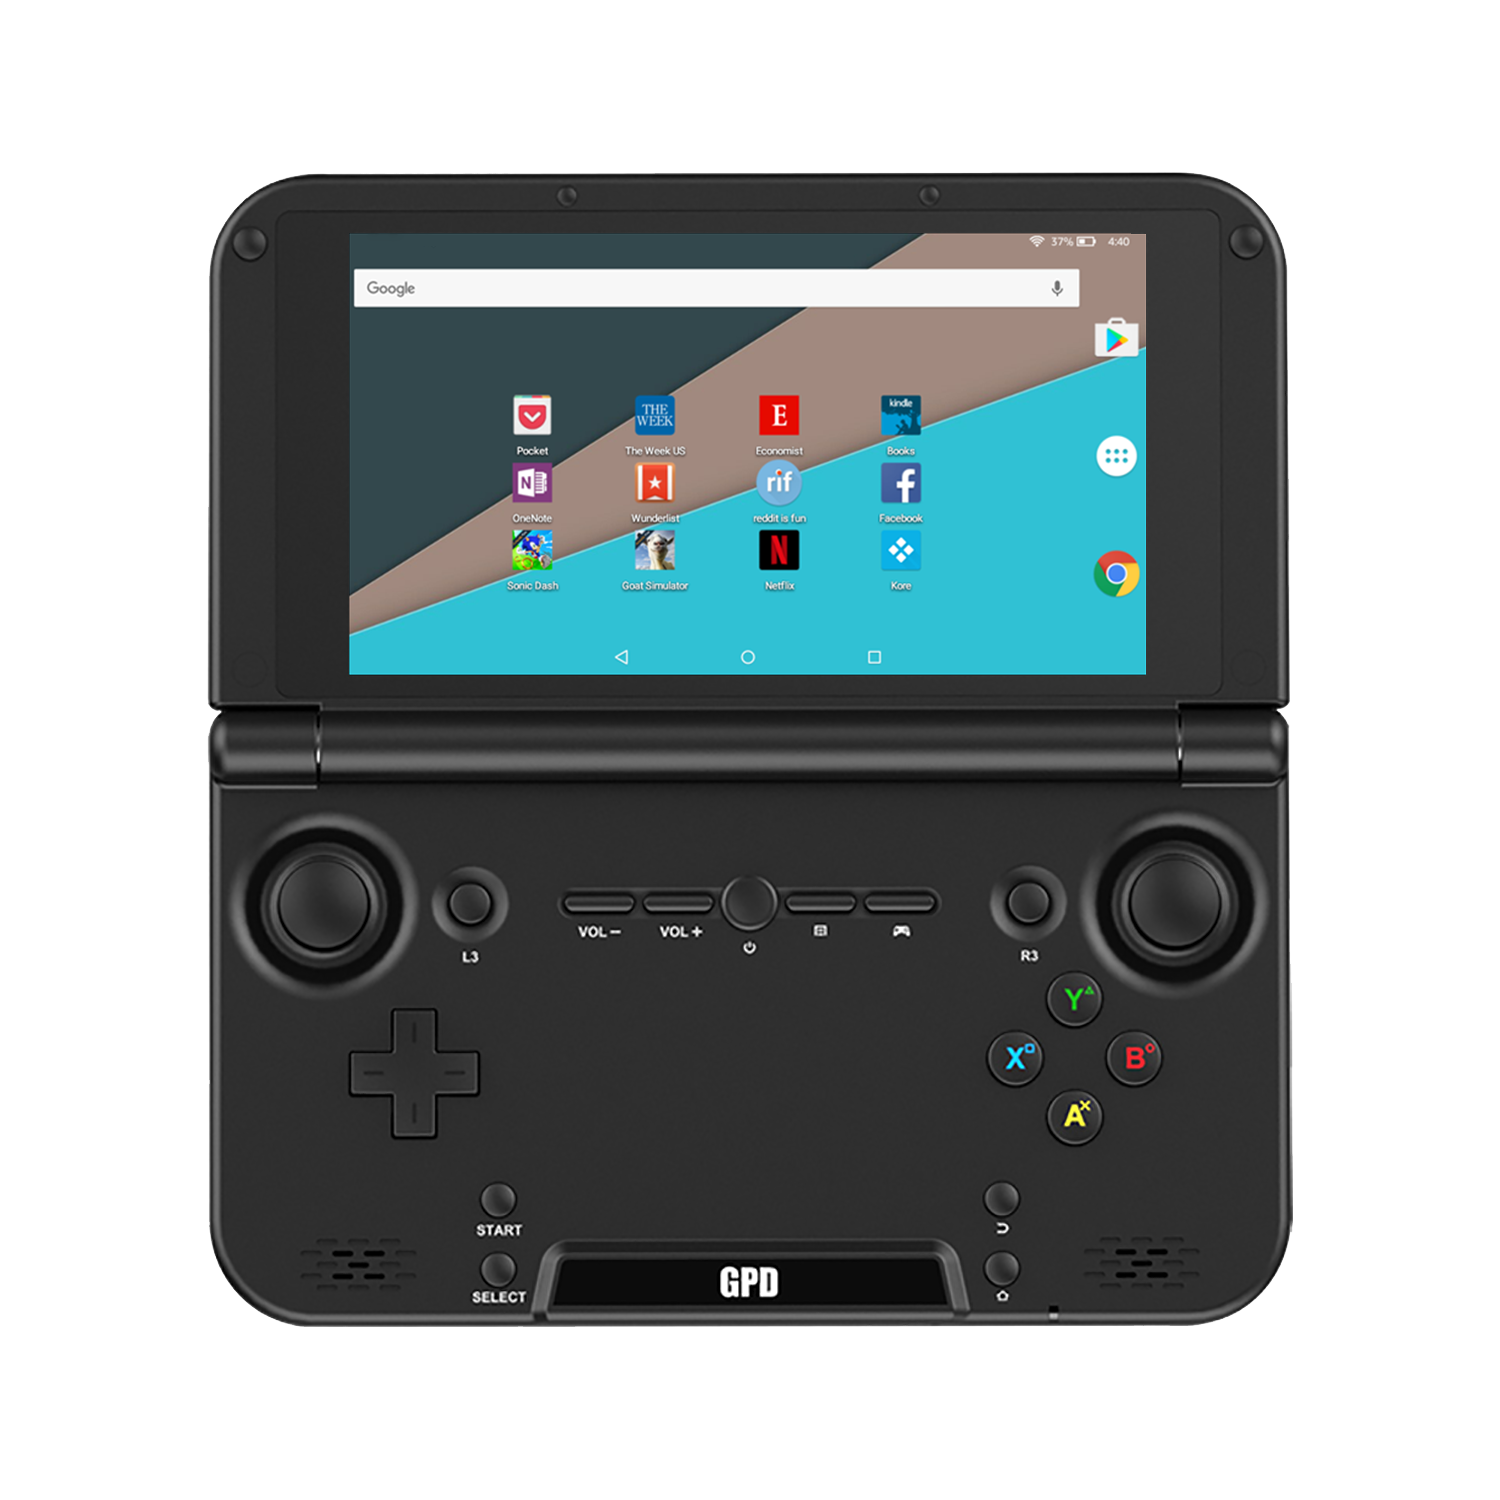 GPD XD Plus front view - Showing Android 7 UI (4116186988598)